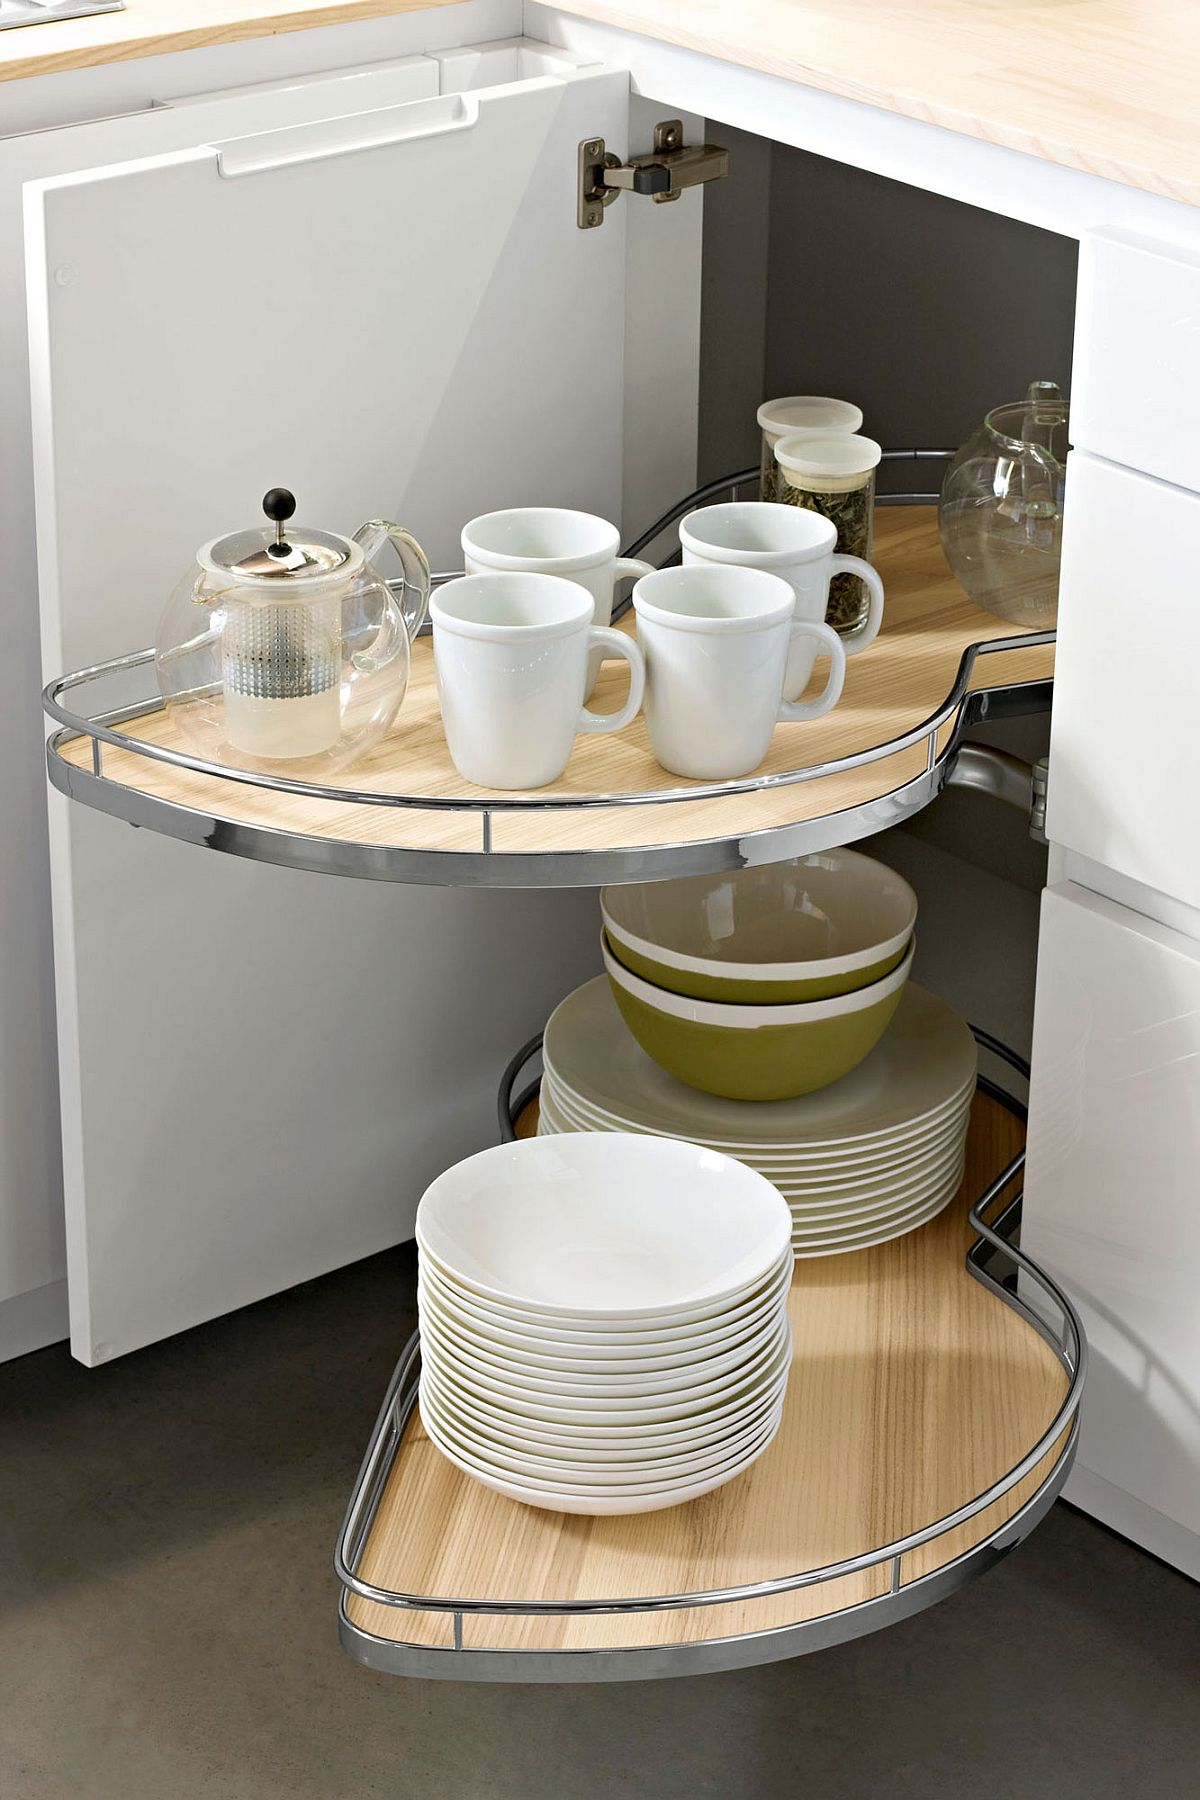 Combine Heritage with unique range of kitchen storage solutions from Snaidero